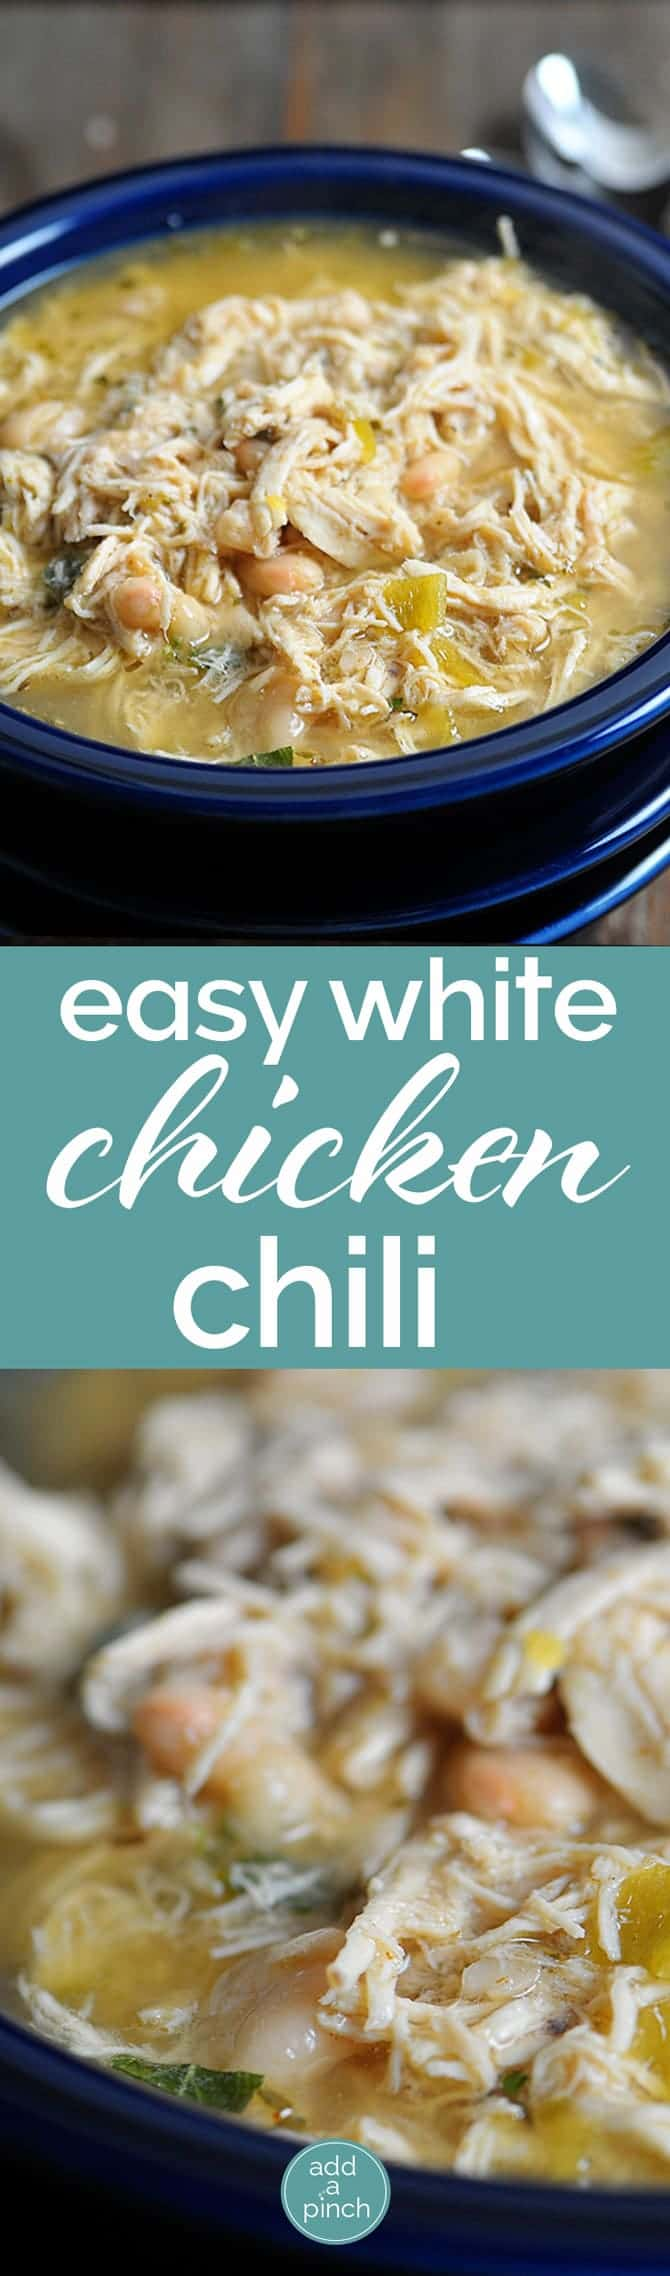 chili simple hearty white chili white bean chicken chili white chili ...